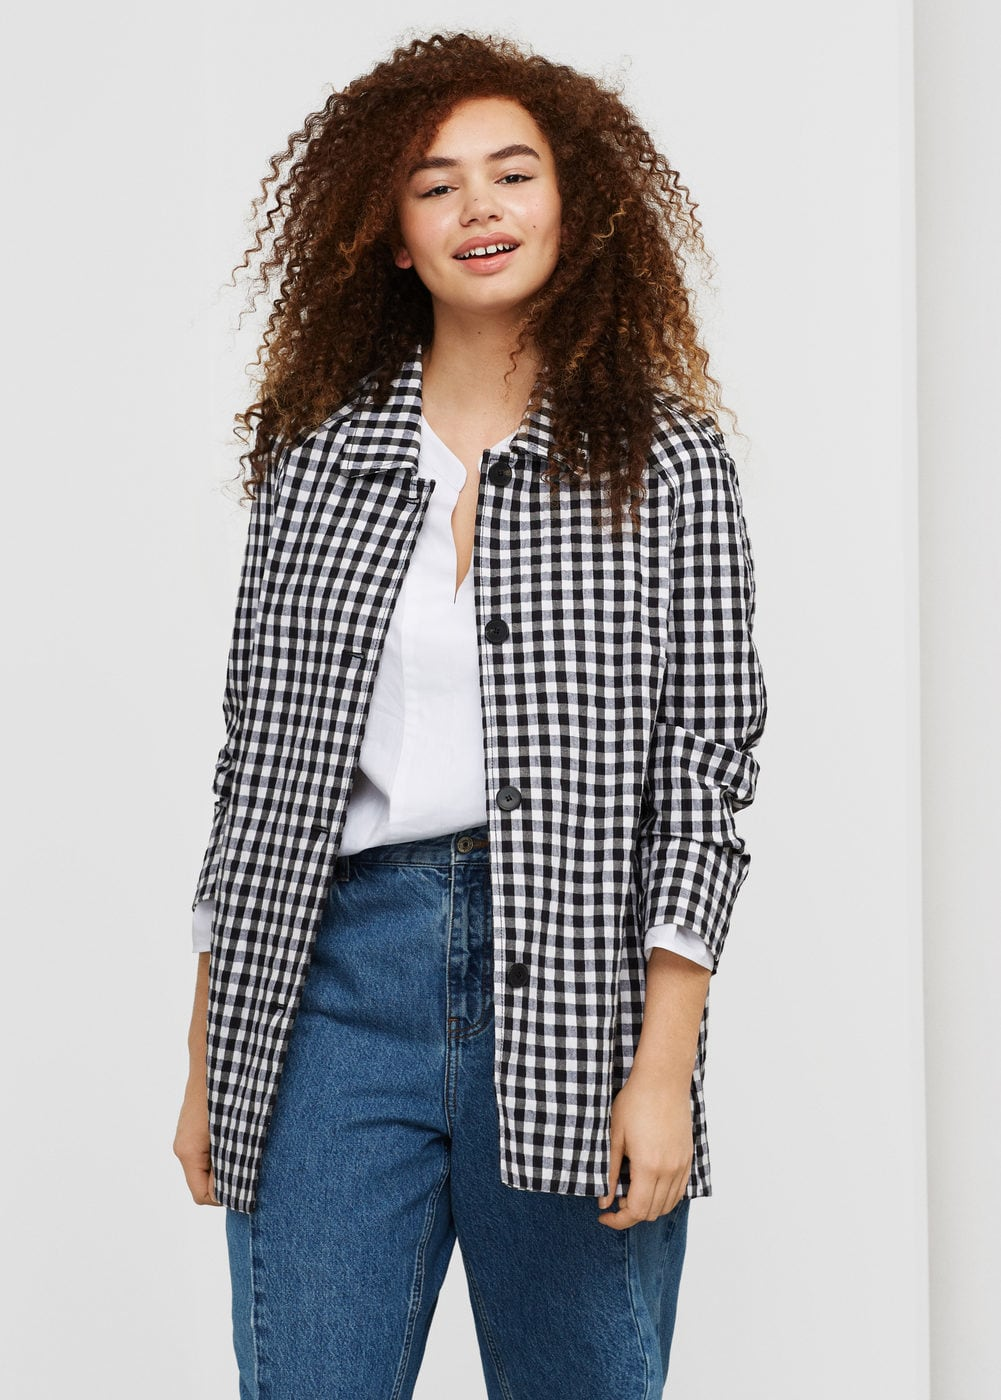 It's Finally Time to Break Out the Gingham